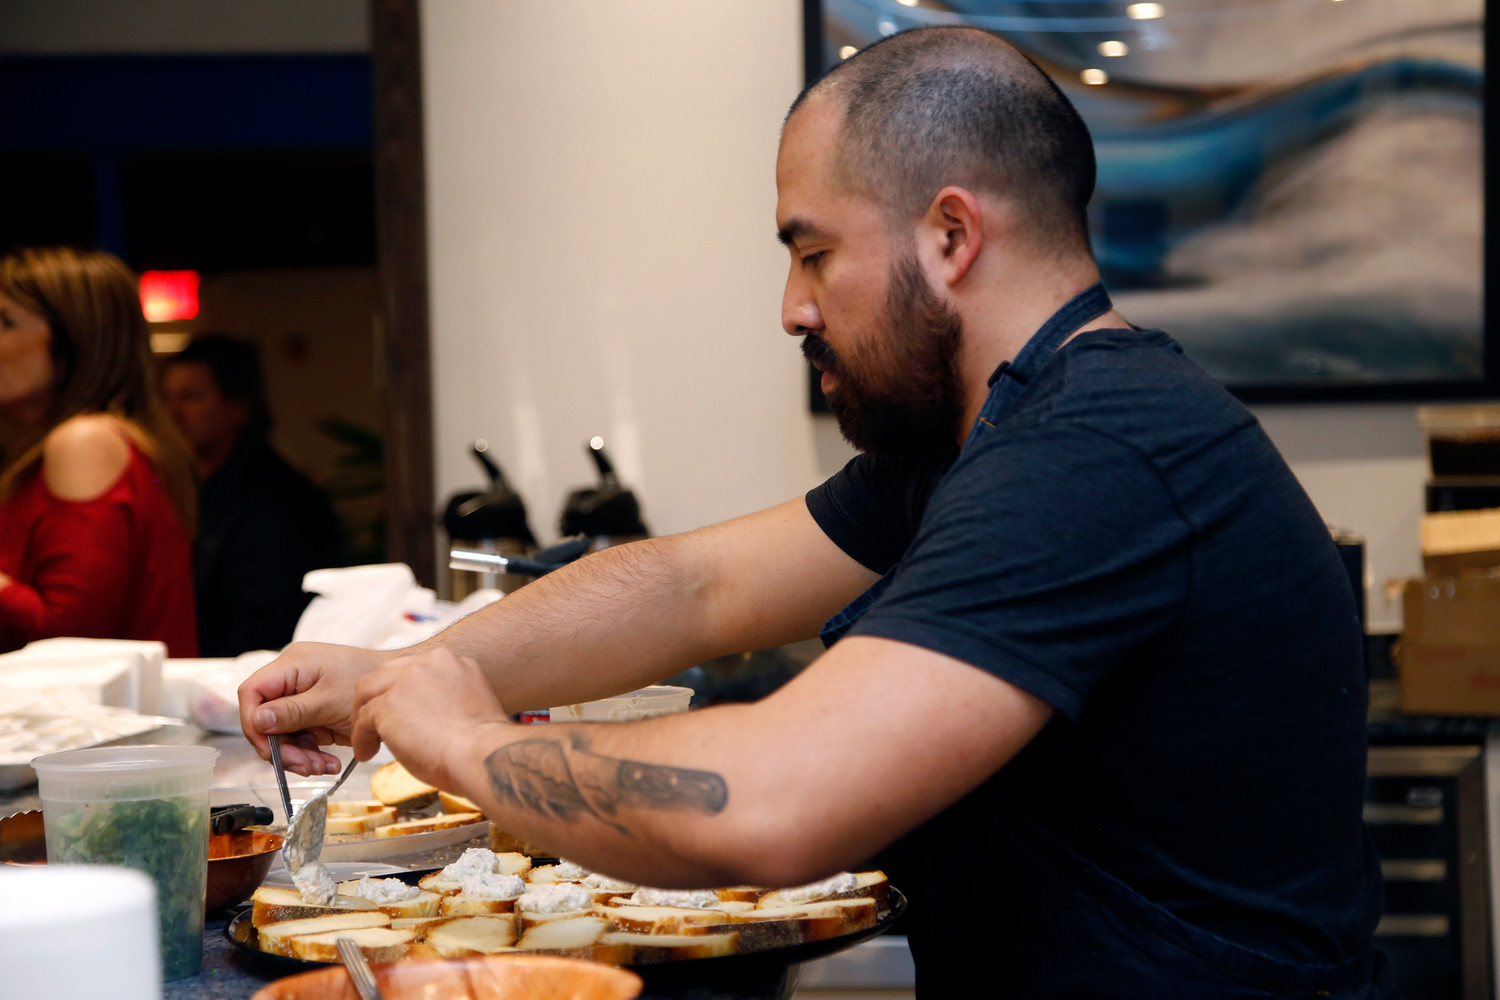 Long Beach Chef Ronnie Jaramillo prepares Baba Ganoush appetizers.